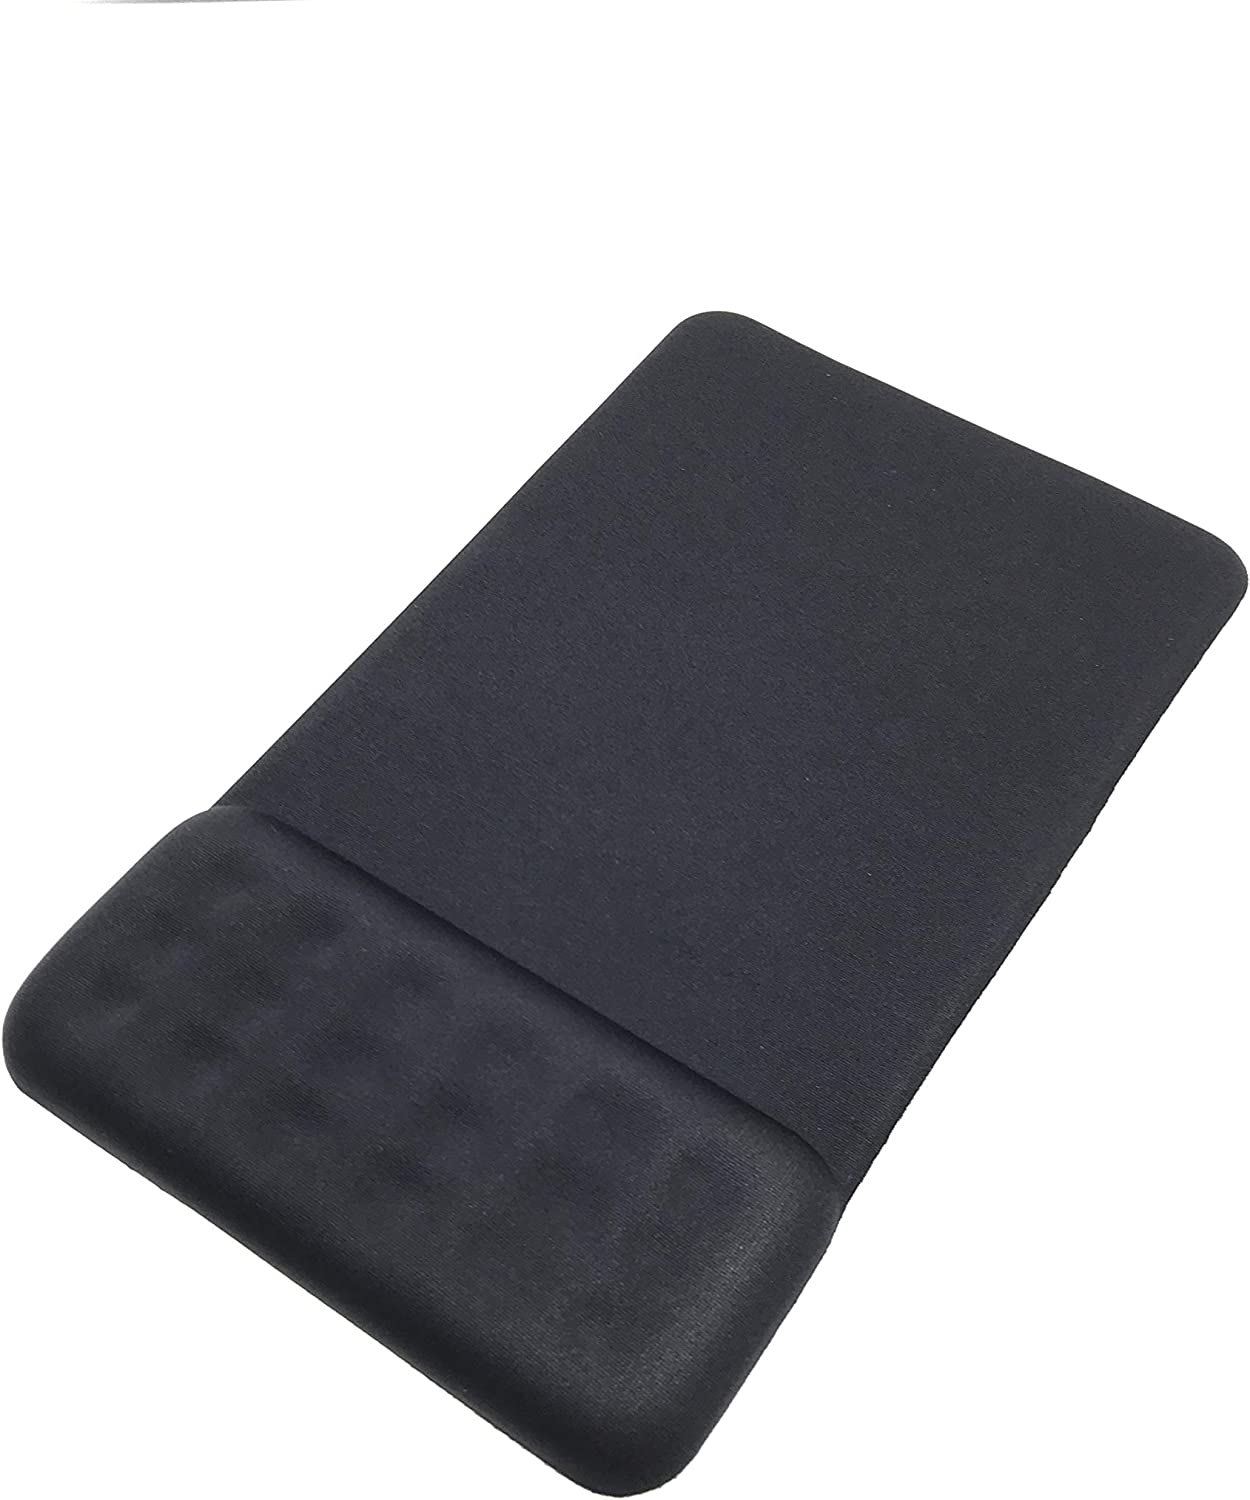 Tomer-wharf Silica Gel Cuff Mouse pad,Quality Silica Gel Wrister,pad The Wrist Effectively and Make Wrist Relief from Fatigue and Hurt.